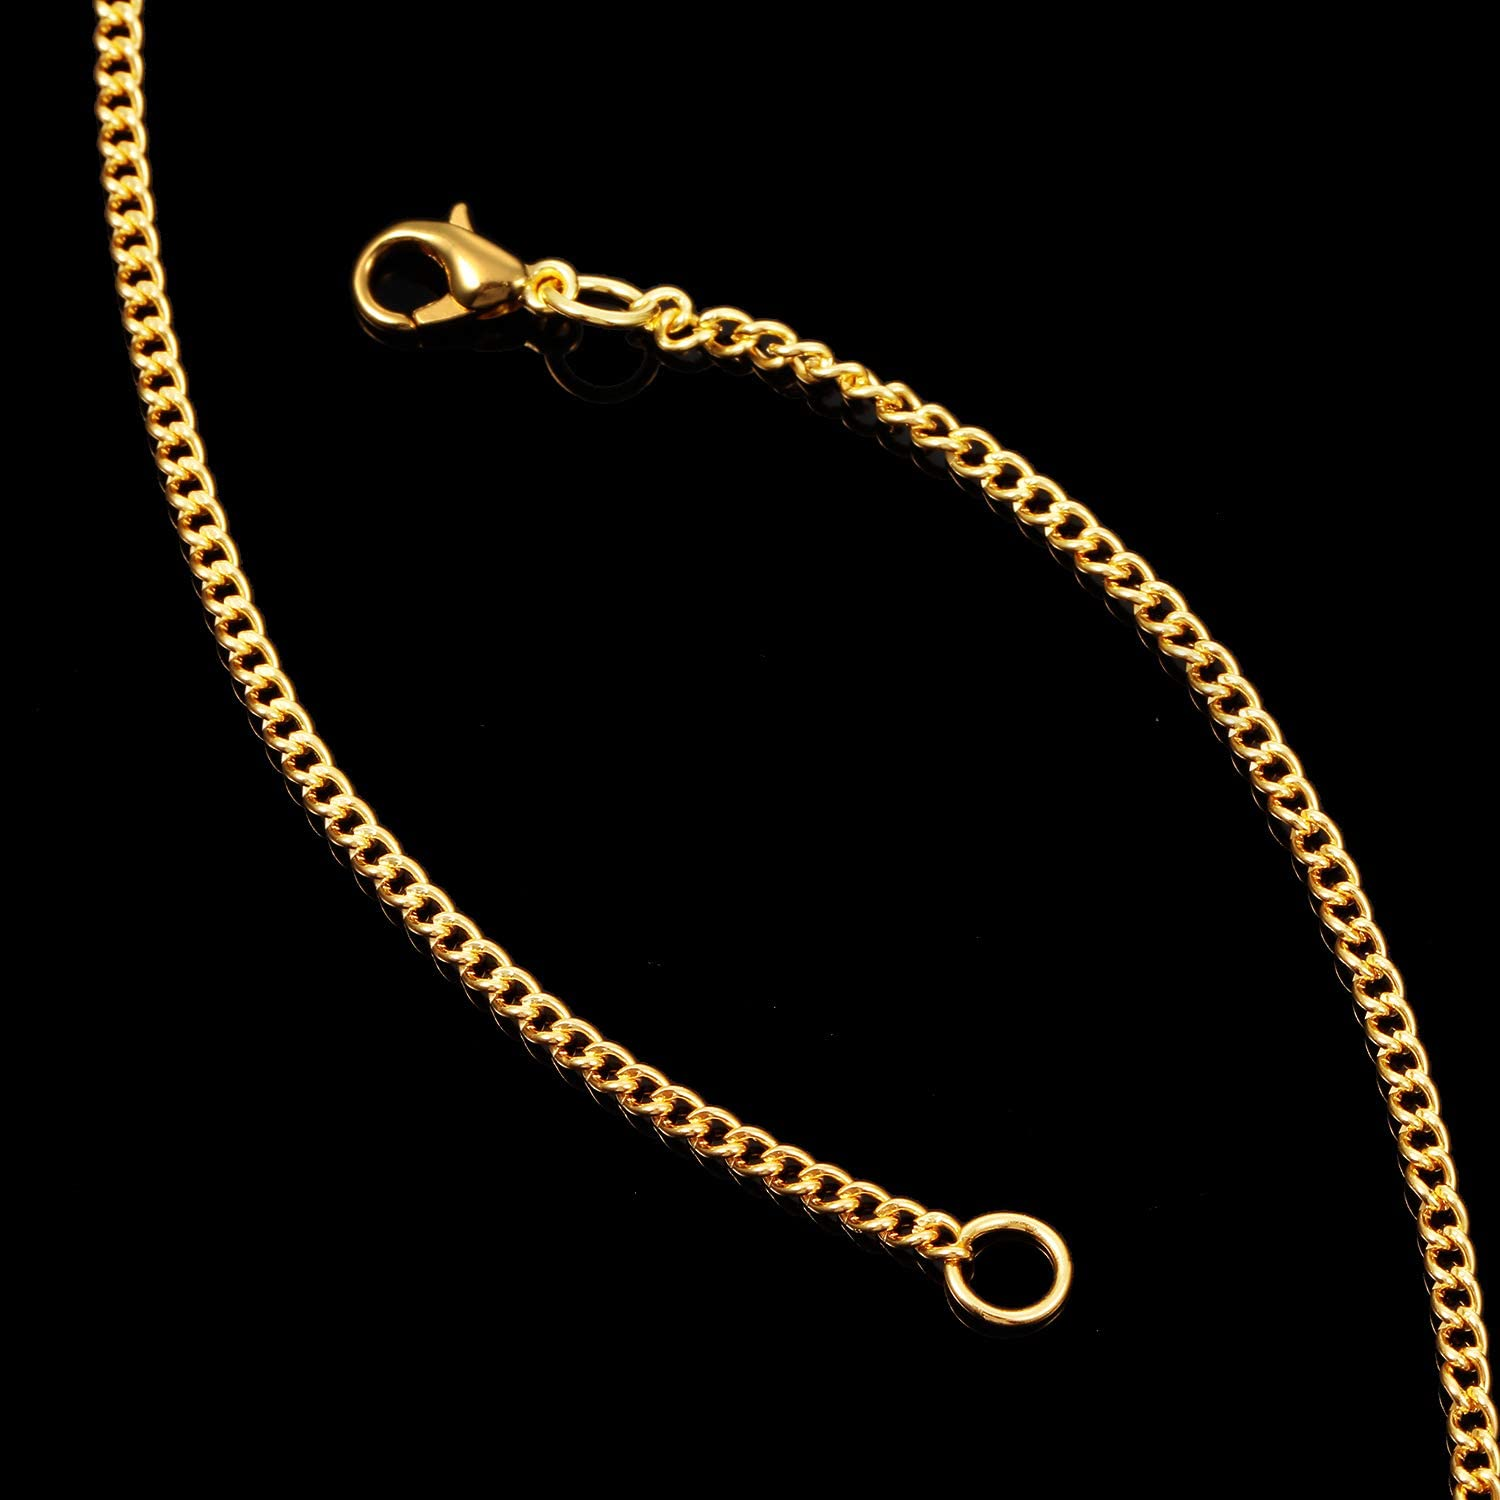 20 Inch 24 Pack Necklace Chains Gold Plated DIY Link Chain Necklace with Lobster Clasps for Women DIY Jewelry Making Supplies